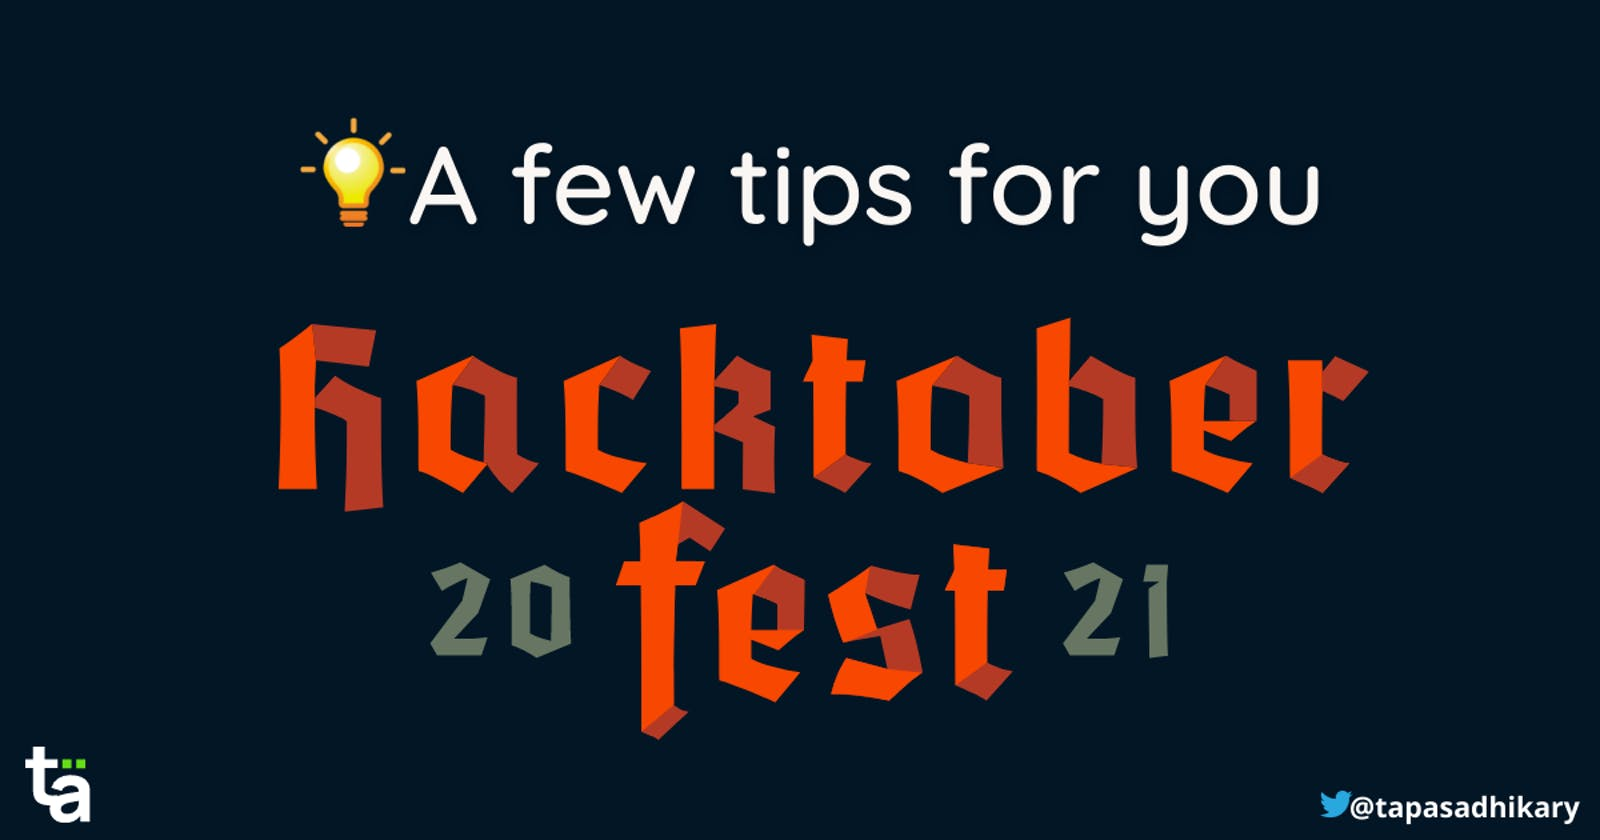 Are you contributing to Hacktoberfest? A few tips for you.